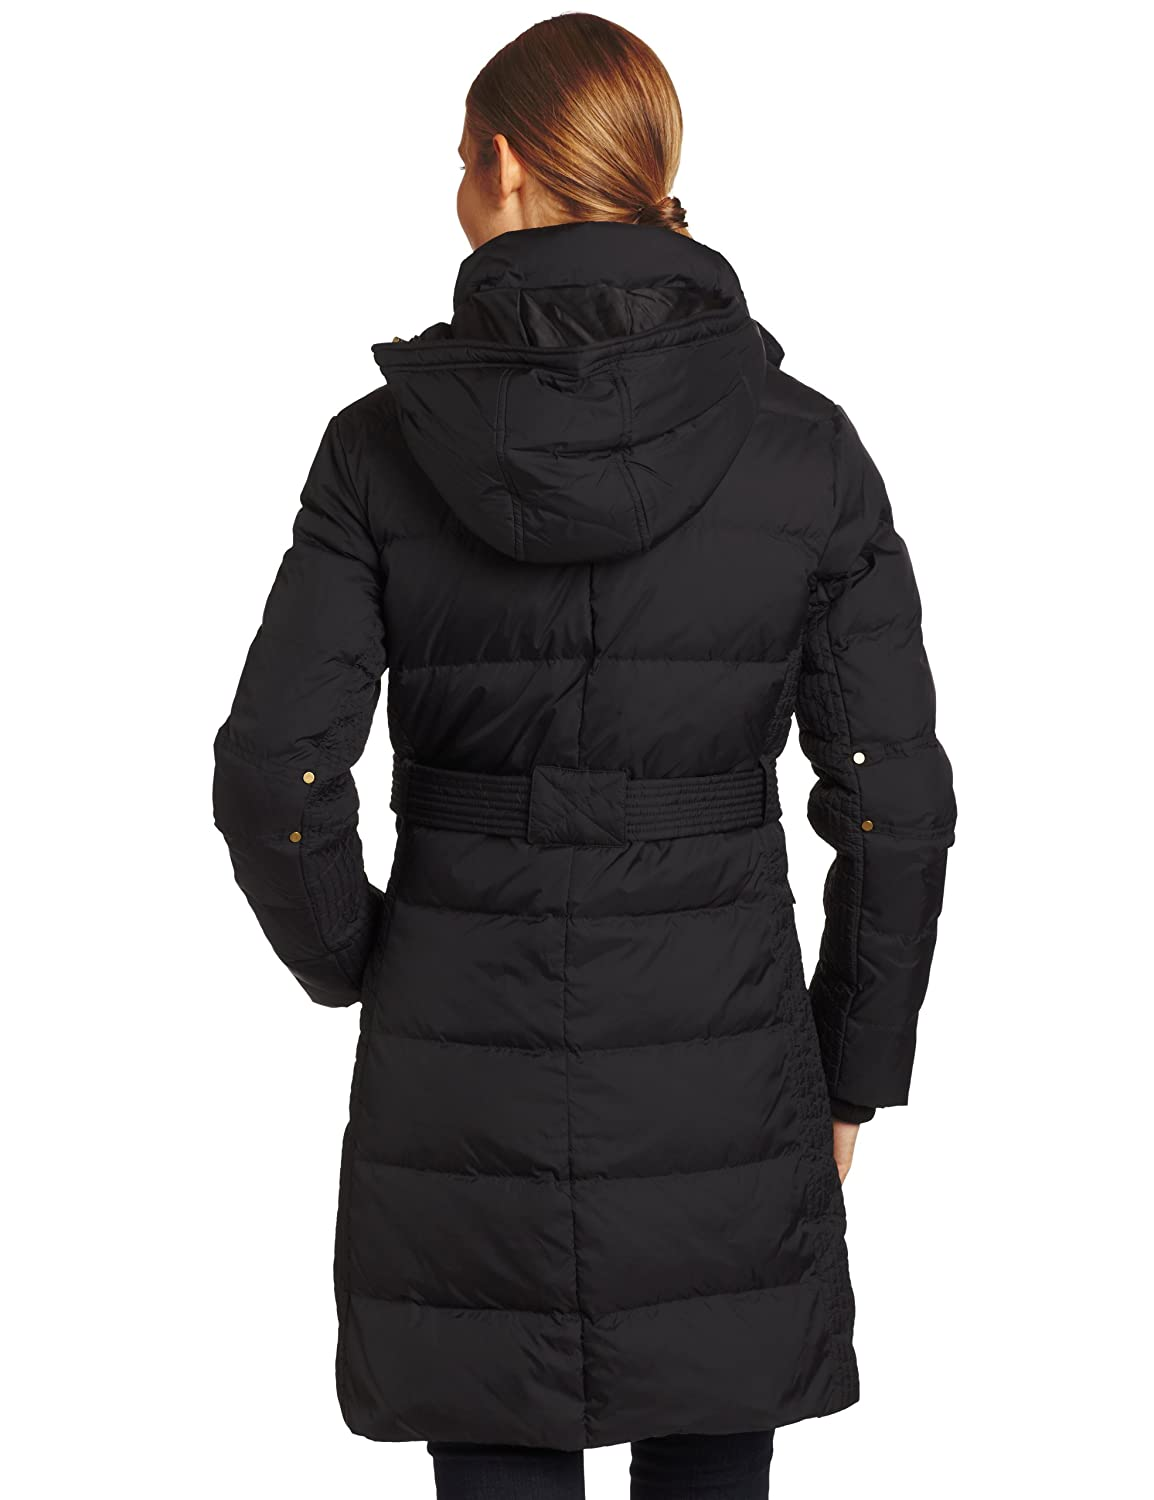 Tommy Hilfiger Womens Hooded Jacket